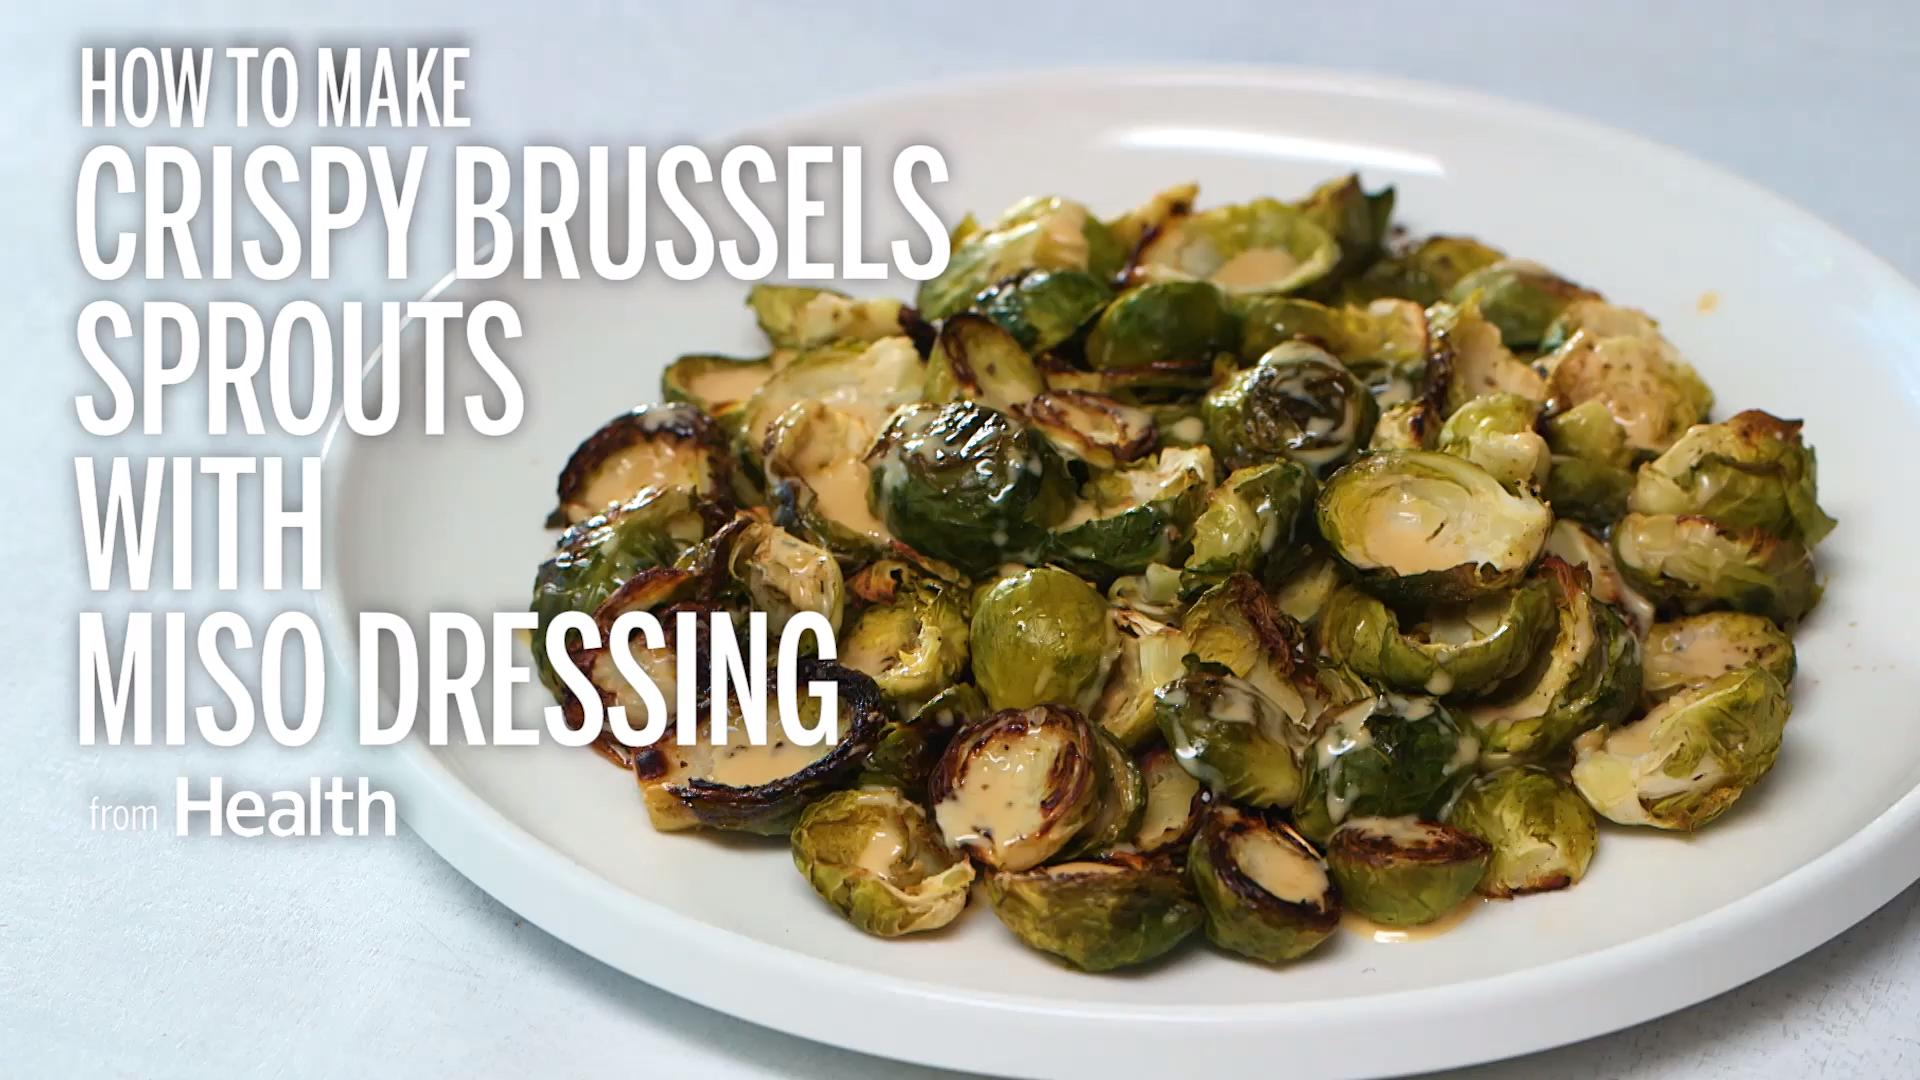 Crispy Brussels Sprouts With Miso Dressing Recipe - Health